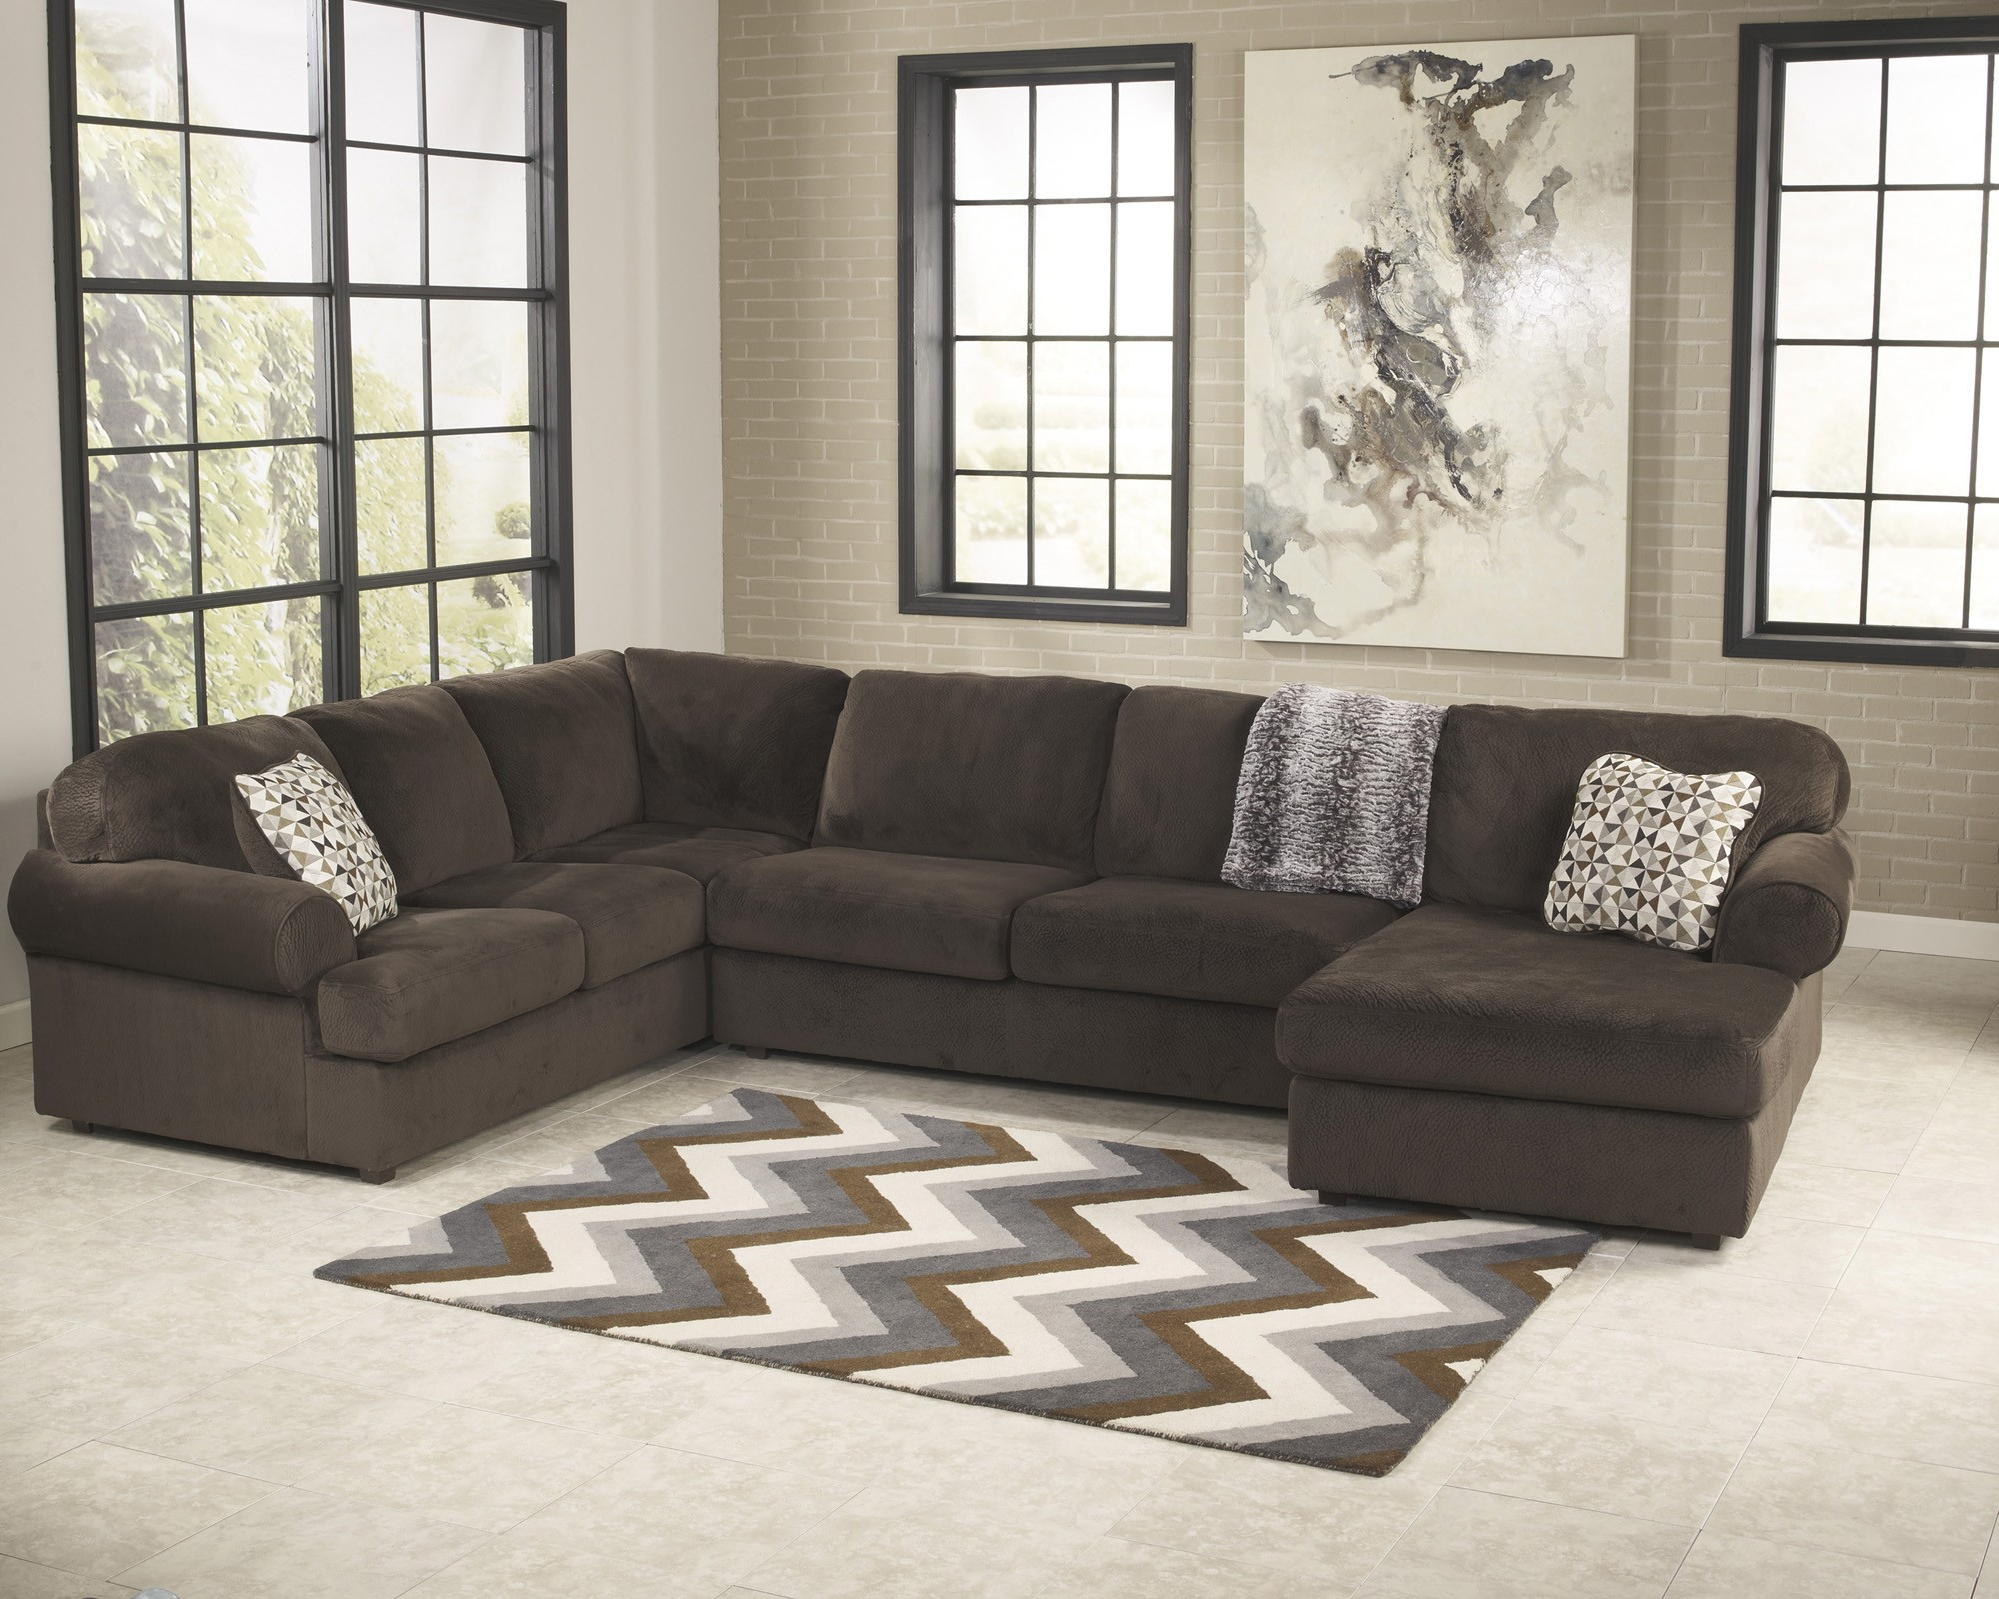 3 Chaise Sectional With Regard To Recent Malbry Point 3 Piece Sectionals With Laf Chaise (Gallery 9 of 20)